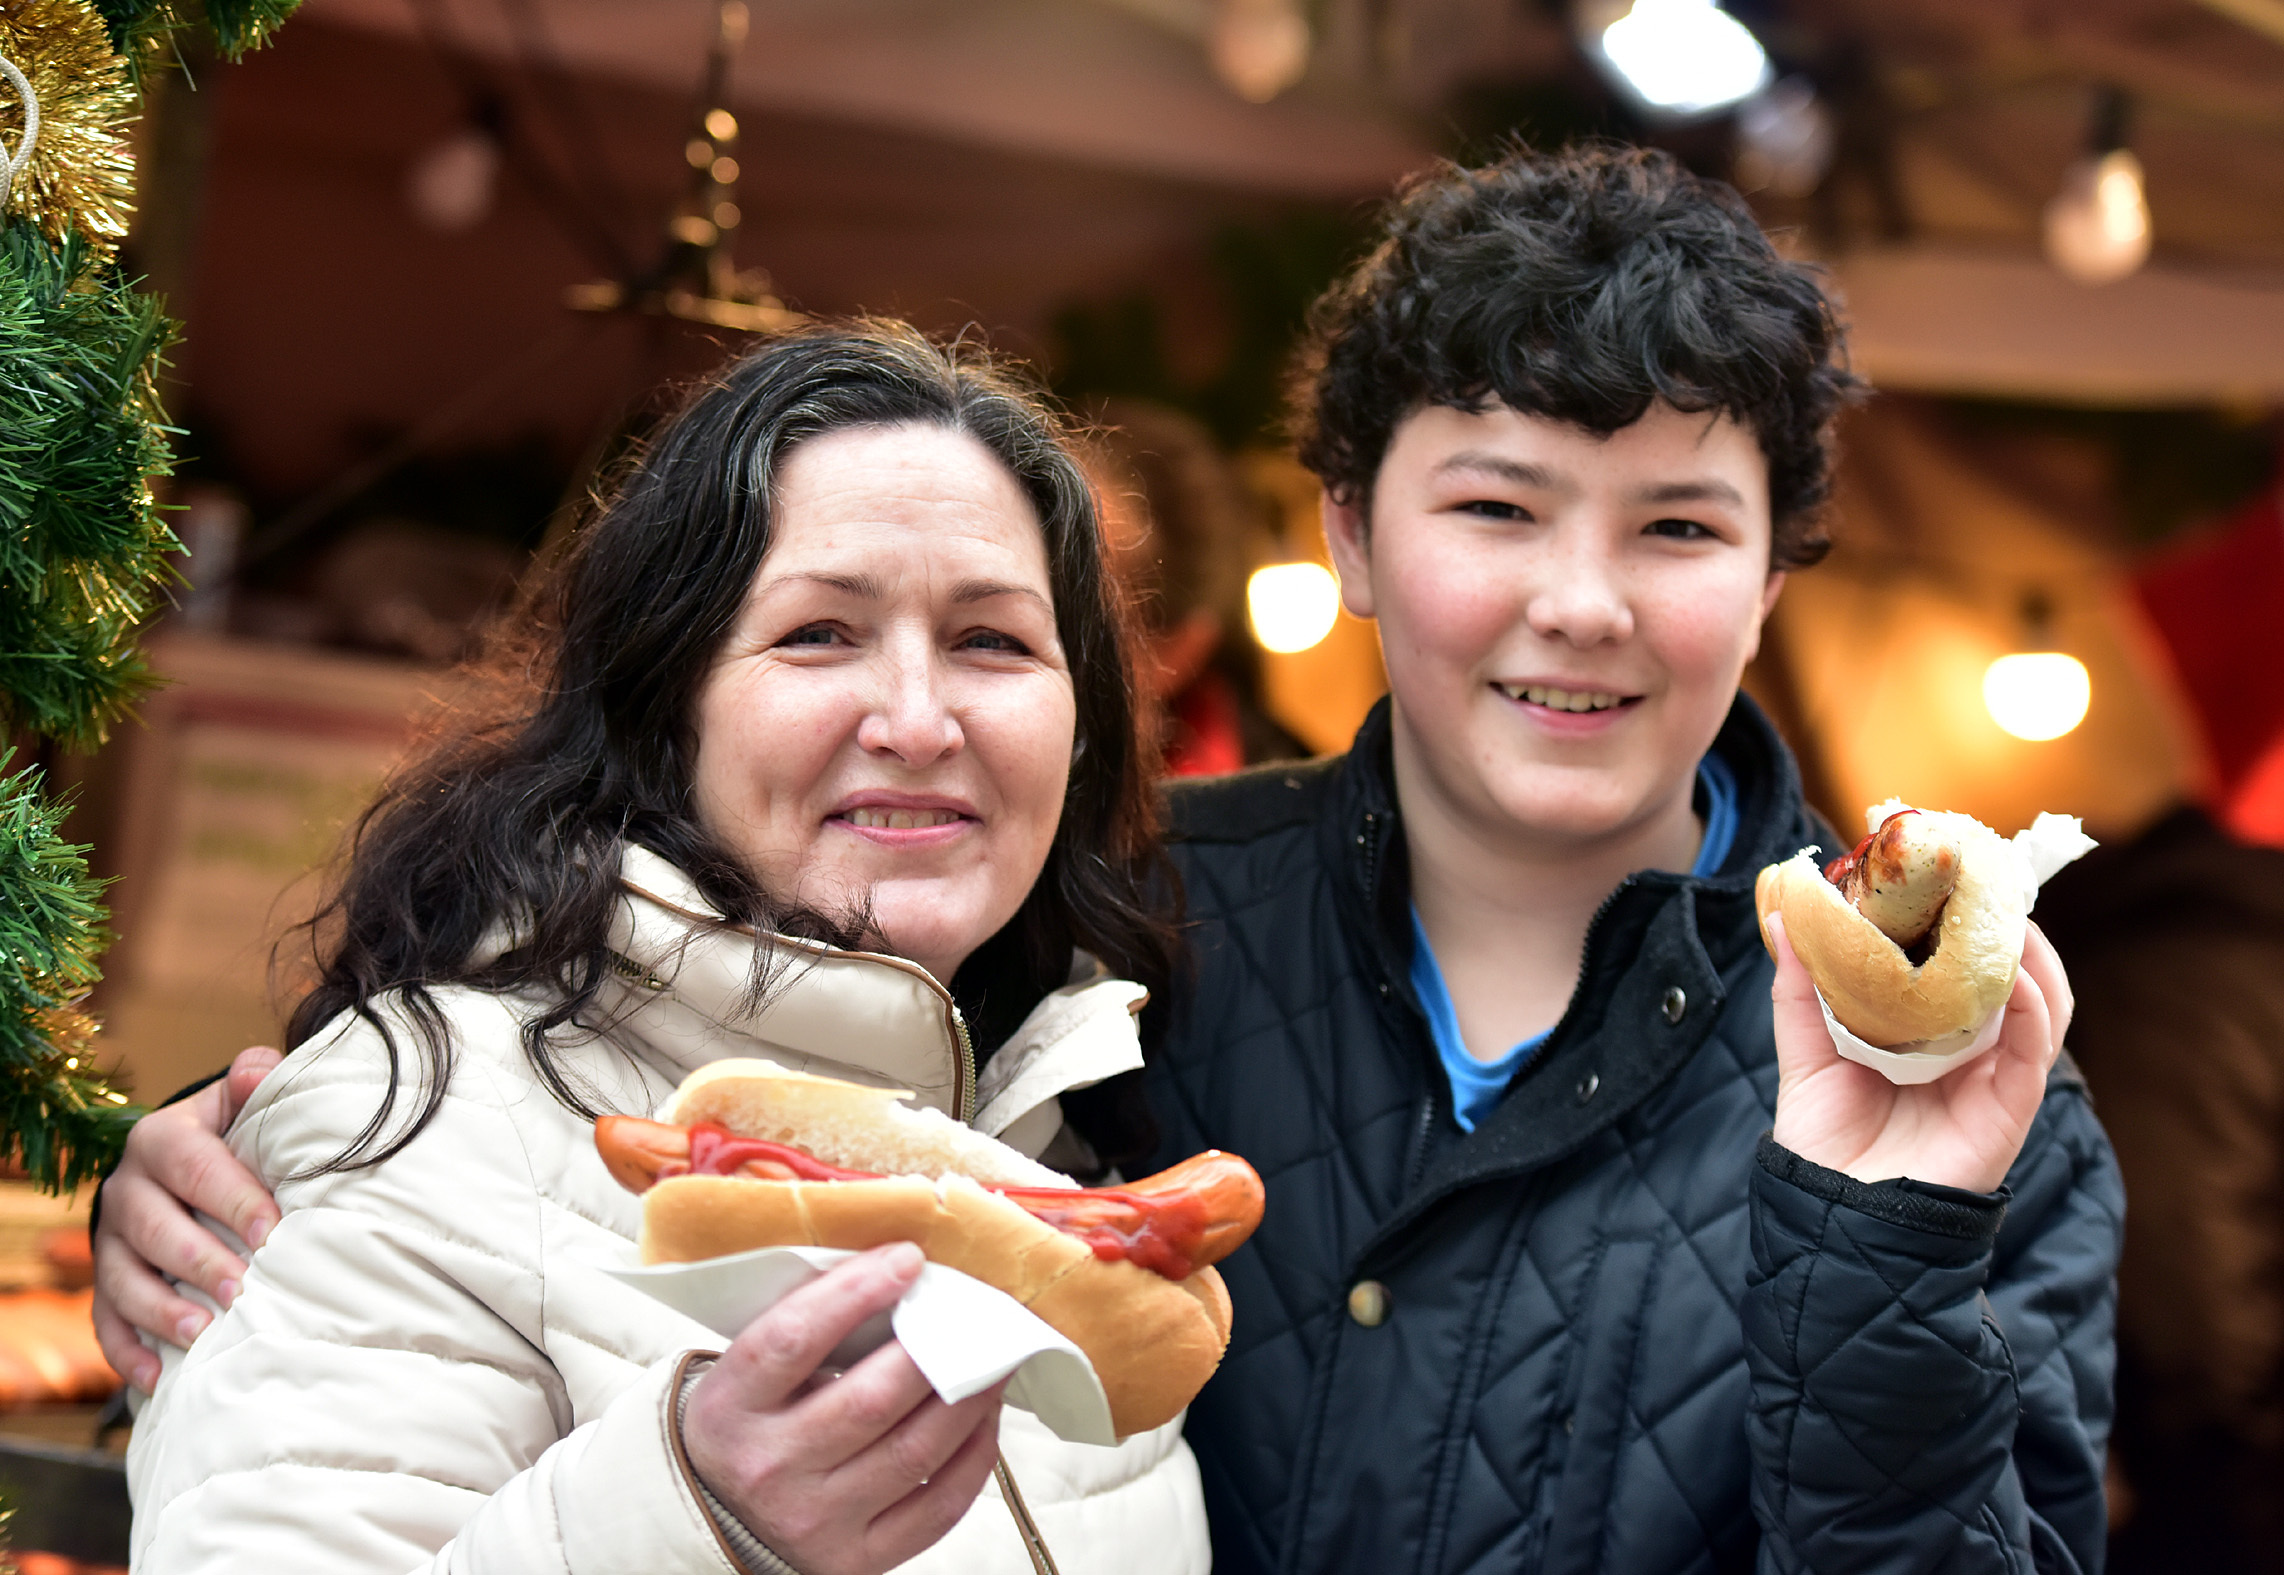 FEAST: Hayley Rowan and her son Tom Thompson, aged 13, enjoy food at the Christmas market in Bolton town centre